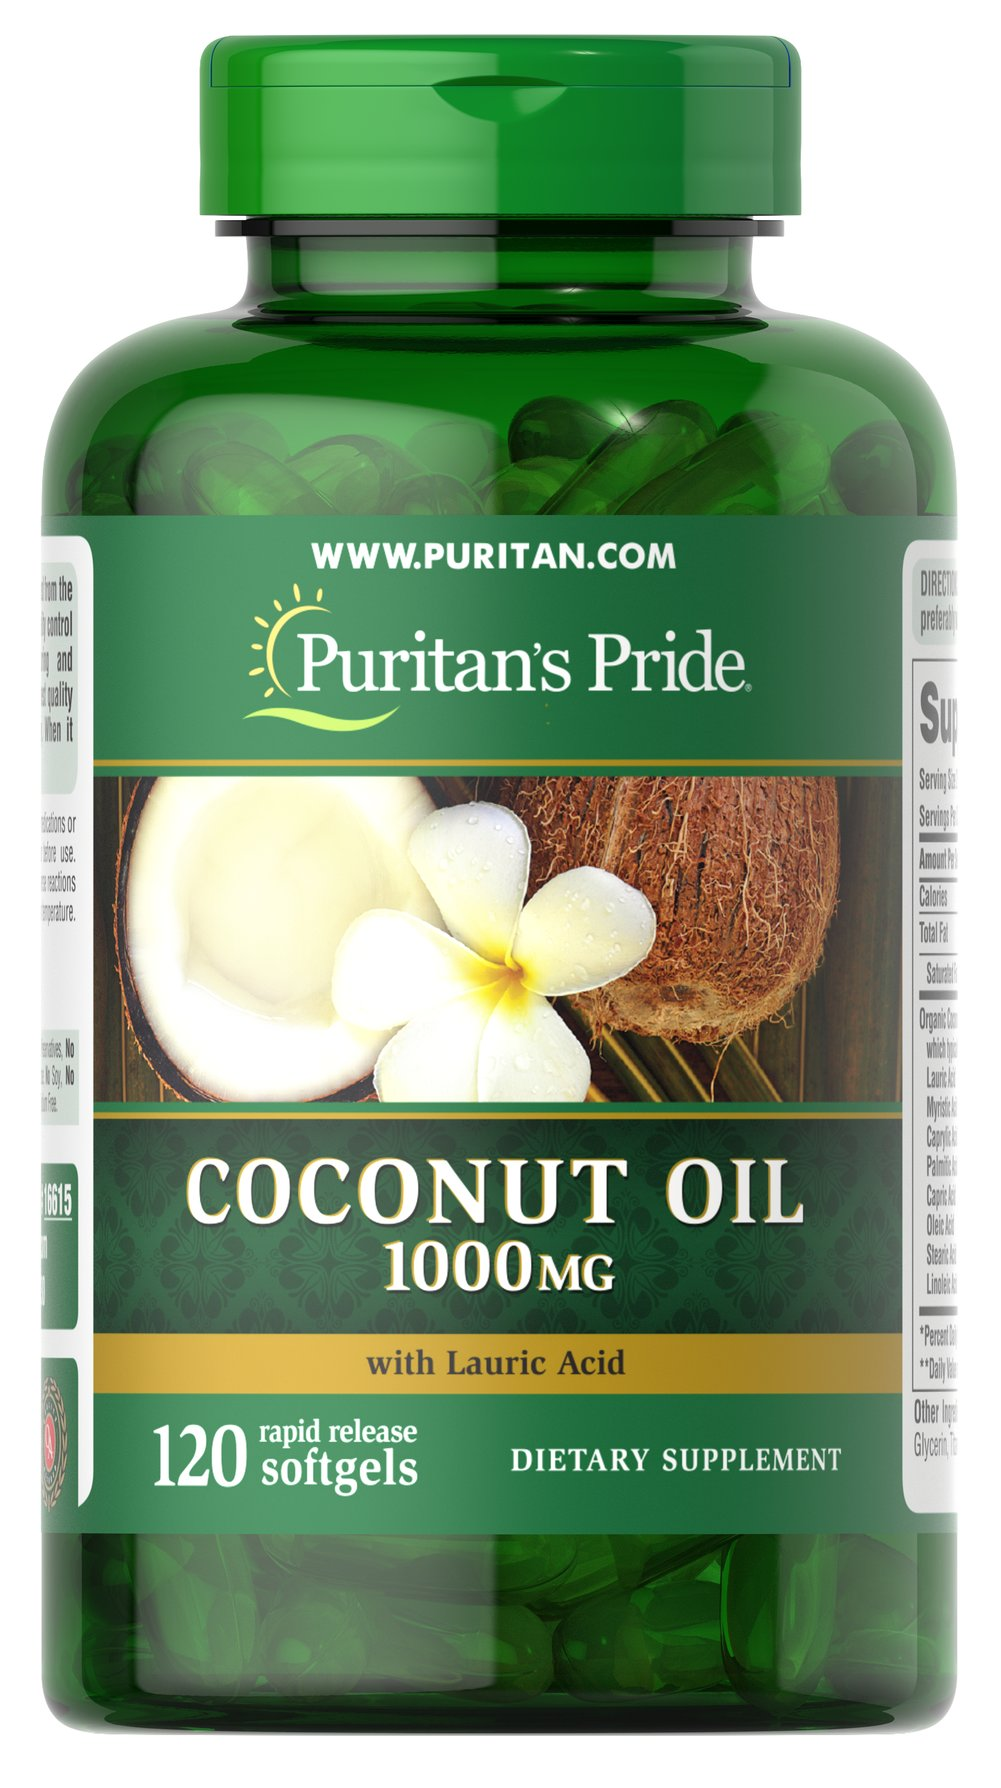 Coconut Oil 1000 mg <p>Coconuts are enjoyed in tropical regions around the world and now you can enjoy the benefits of Coconut Oil in a convenient softgel. Coconut Oil provides you with a natural energy source, and contains essential fatty acids and Medium Chain Triglycerides (MCTs).   MCTs are oxidized differently in the body than other fats, making Coconut Oil a readily available energy source.**</p> 120 Softgels 1000 mg